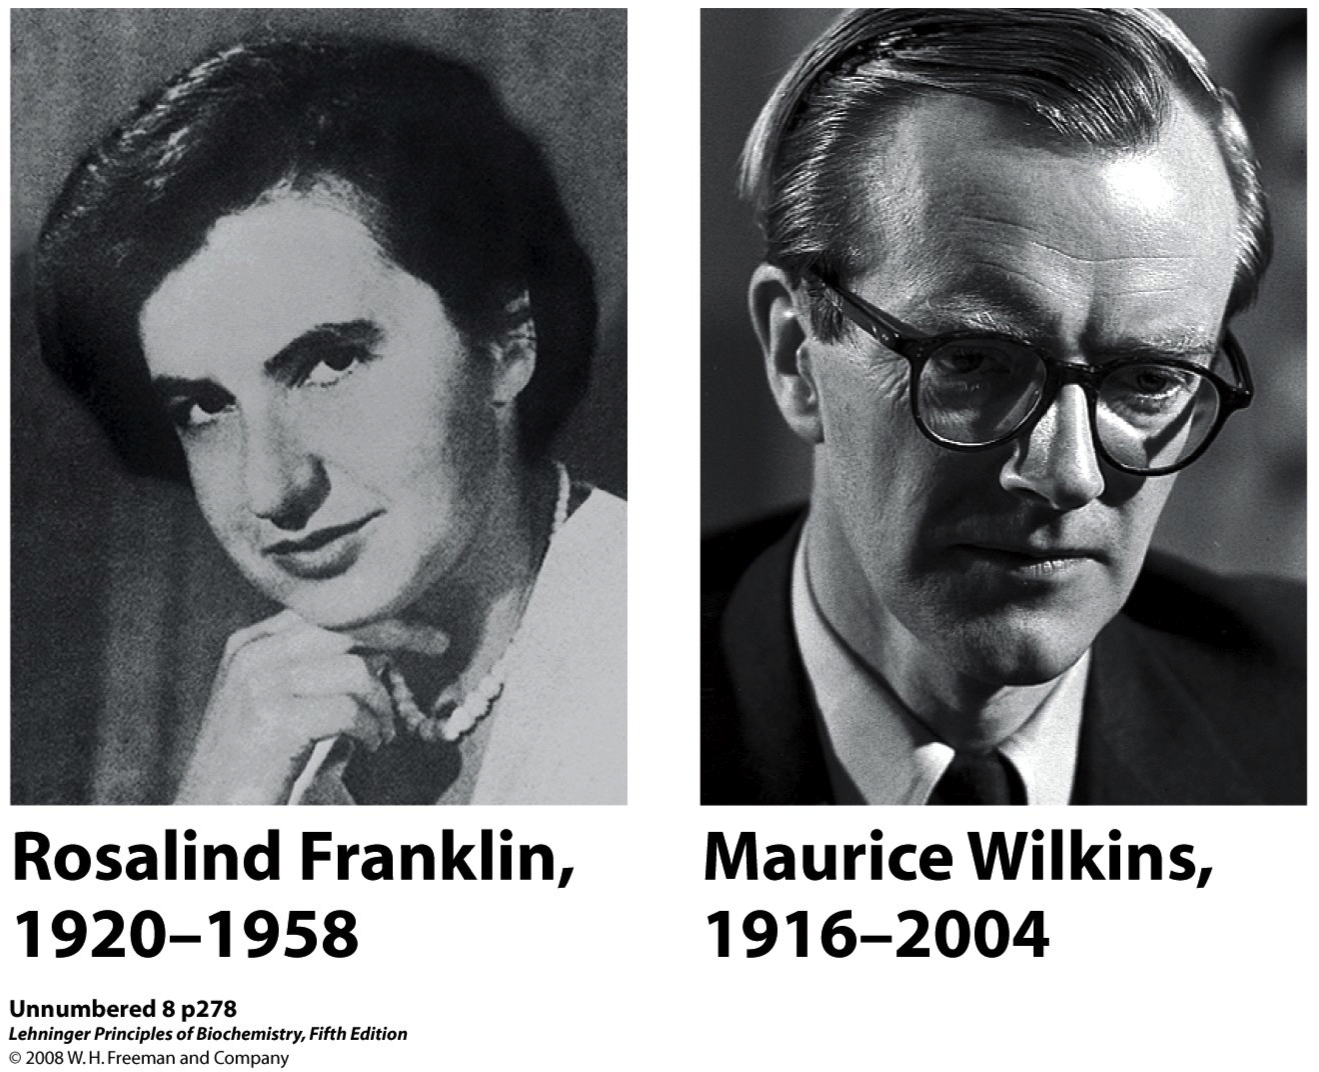 What is Maurice Wilkens famous for?